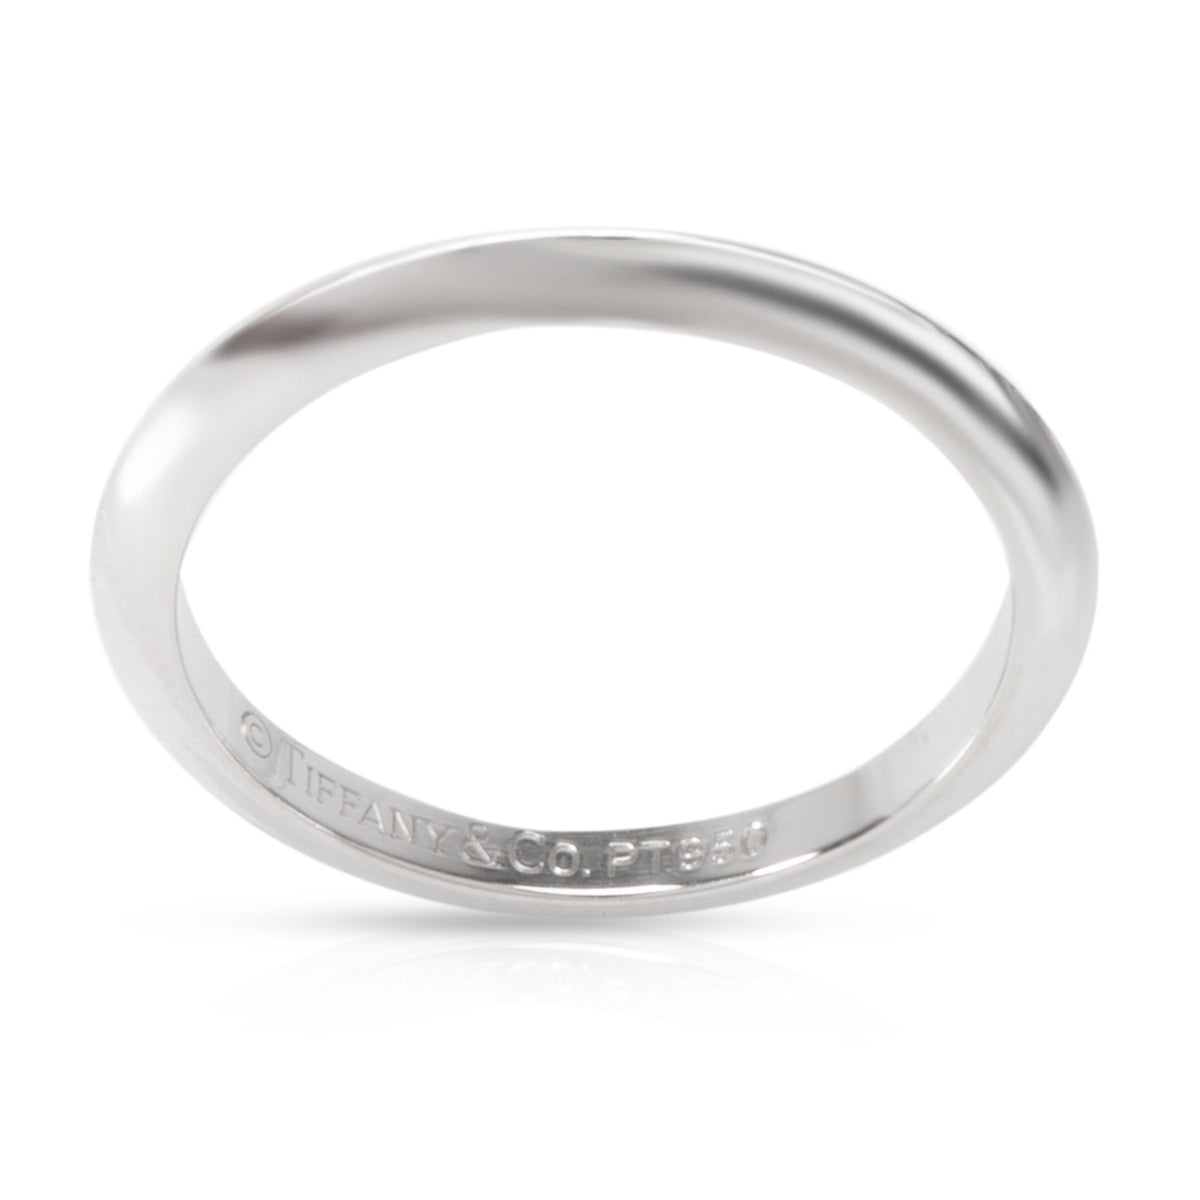 Tiffany & Co. Classic Knife Edge Wedding Band in Platinum 2mm